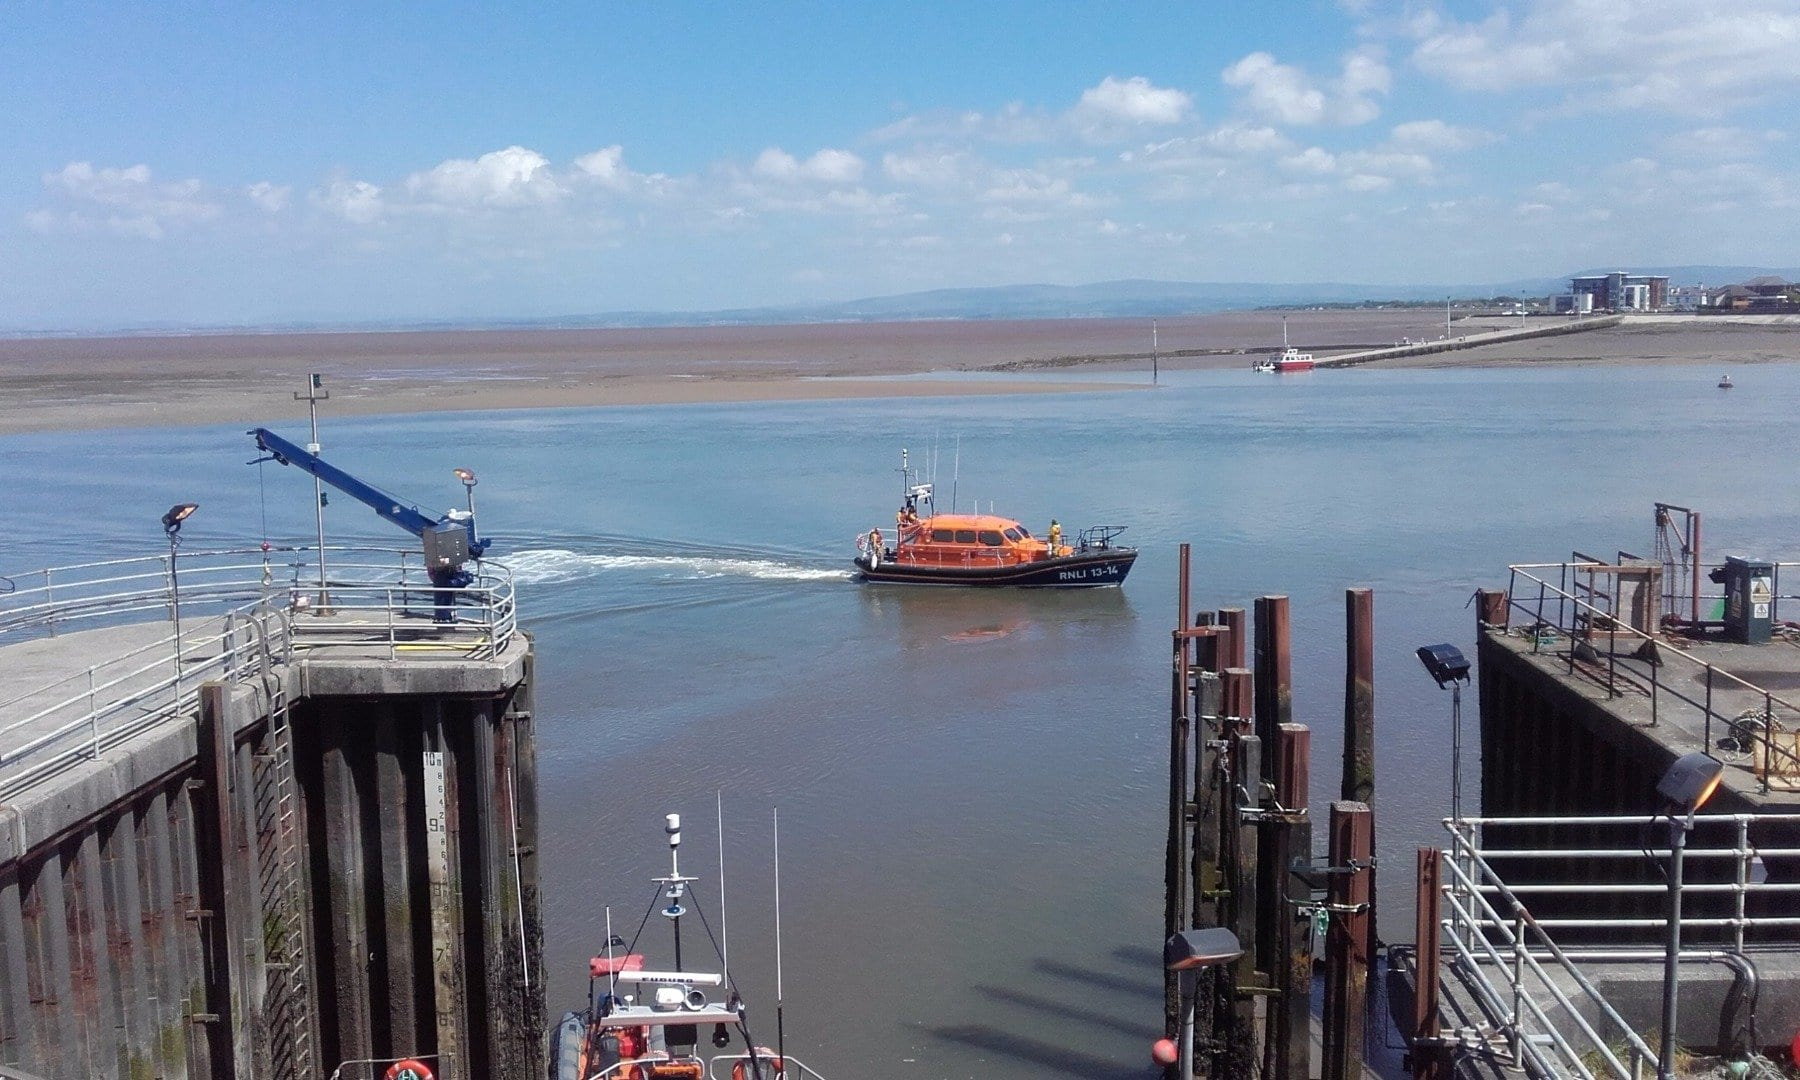 Medical transfer for Fleetwood RNLI in May 17